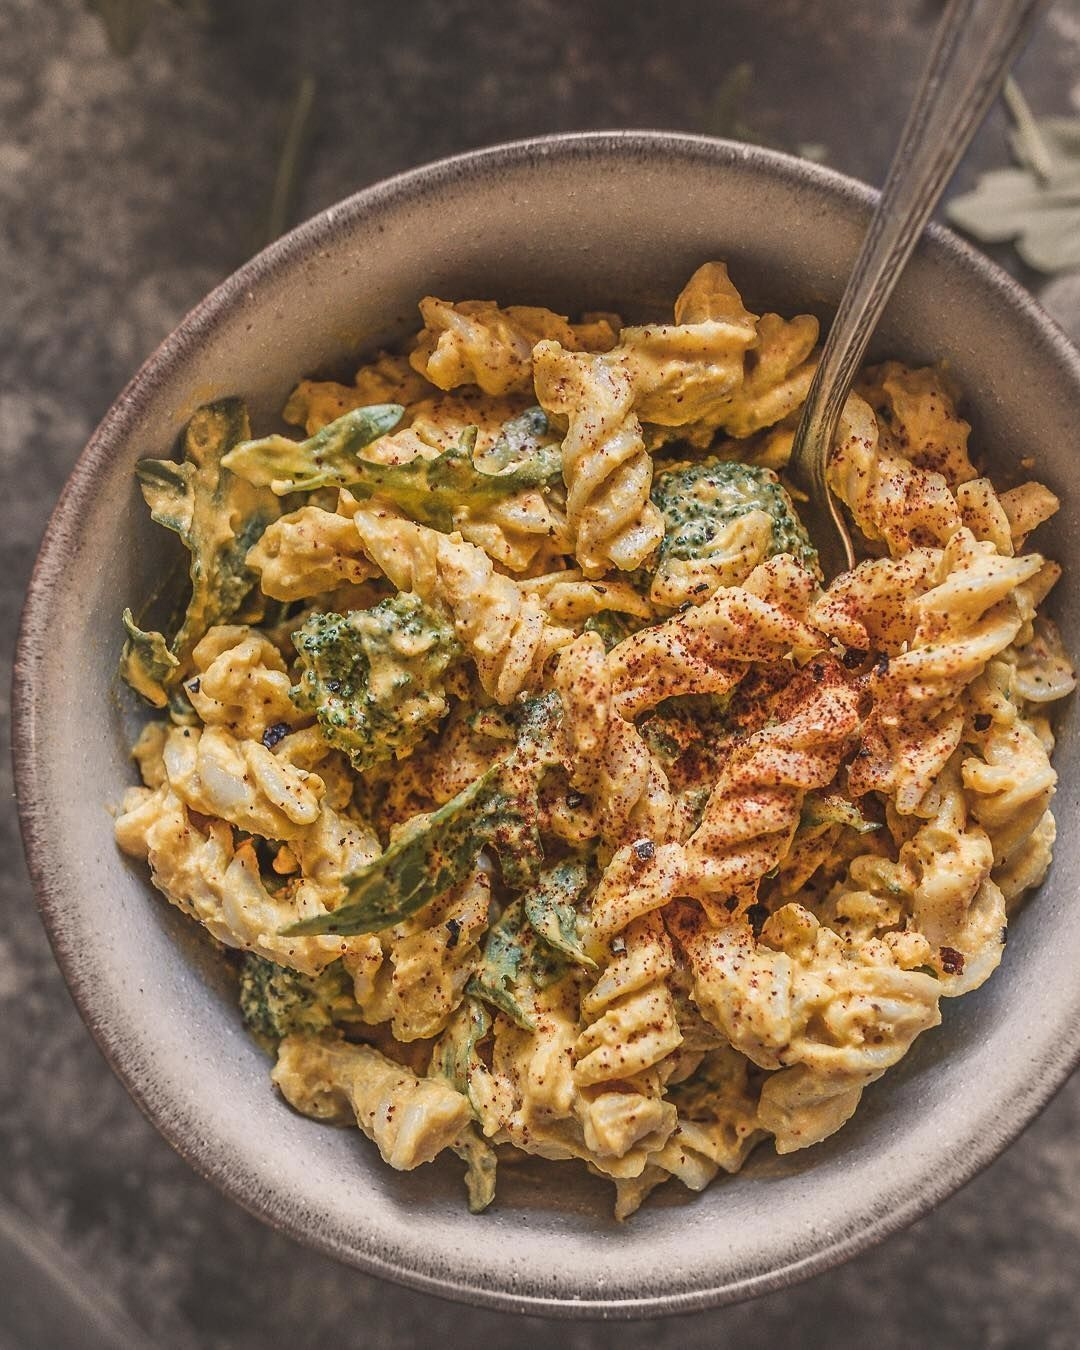 Pasta For Dinner Here S A Vegan Mac Cheese With Cashew Cheese Sauce Ingredients 1 3 Cup Roasted Kabocha Squa Vegan Mac And Cheese Food How To Cook Quinoa